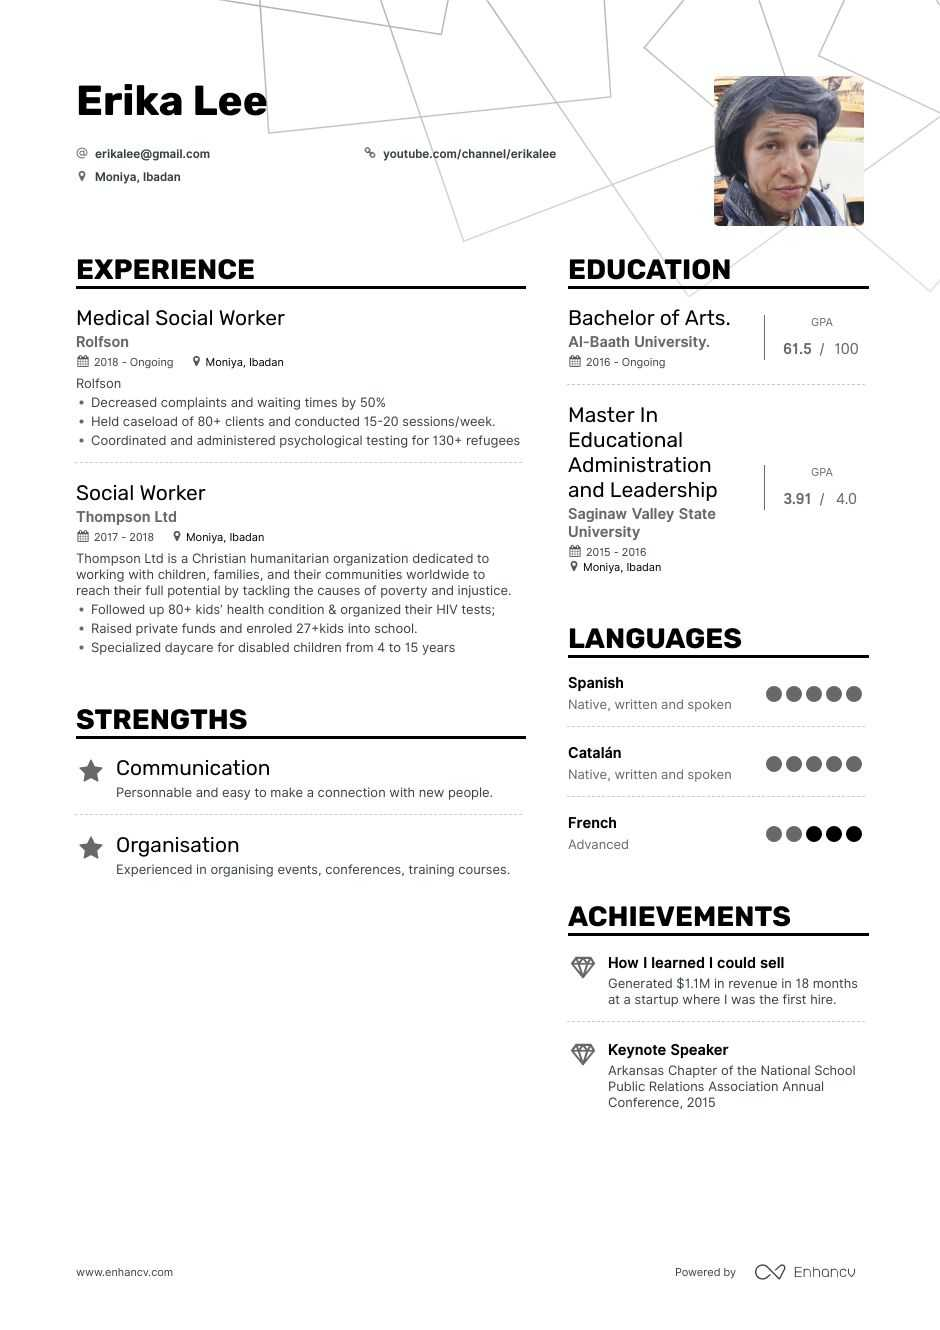 DOWNLOAD: Social Worker Resume Example for 2020 | Enhancv.com